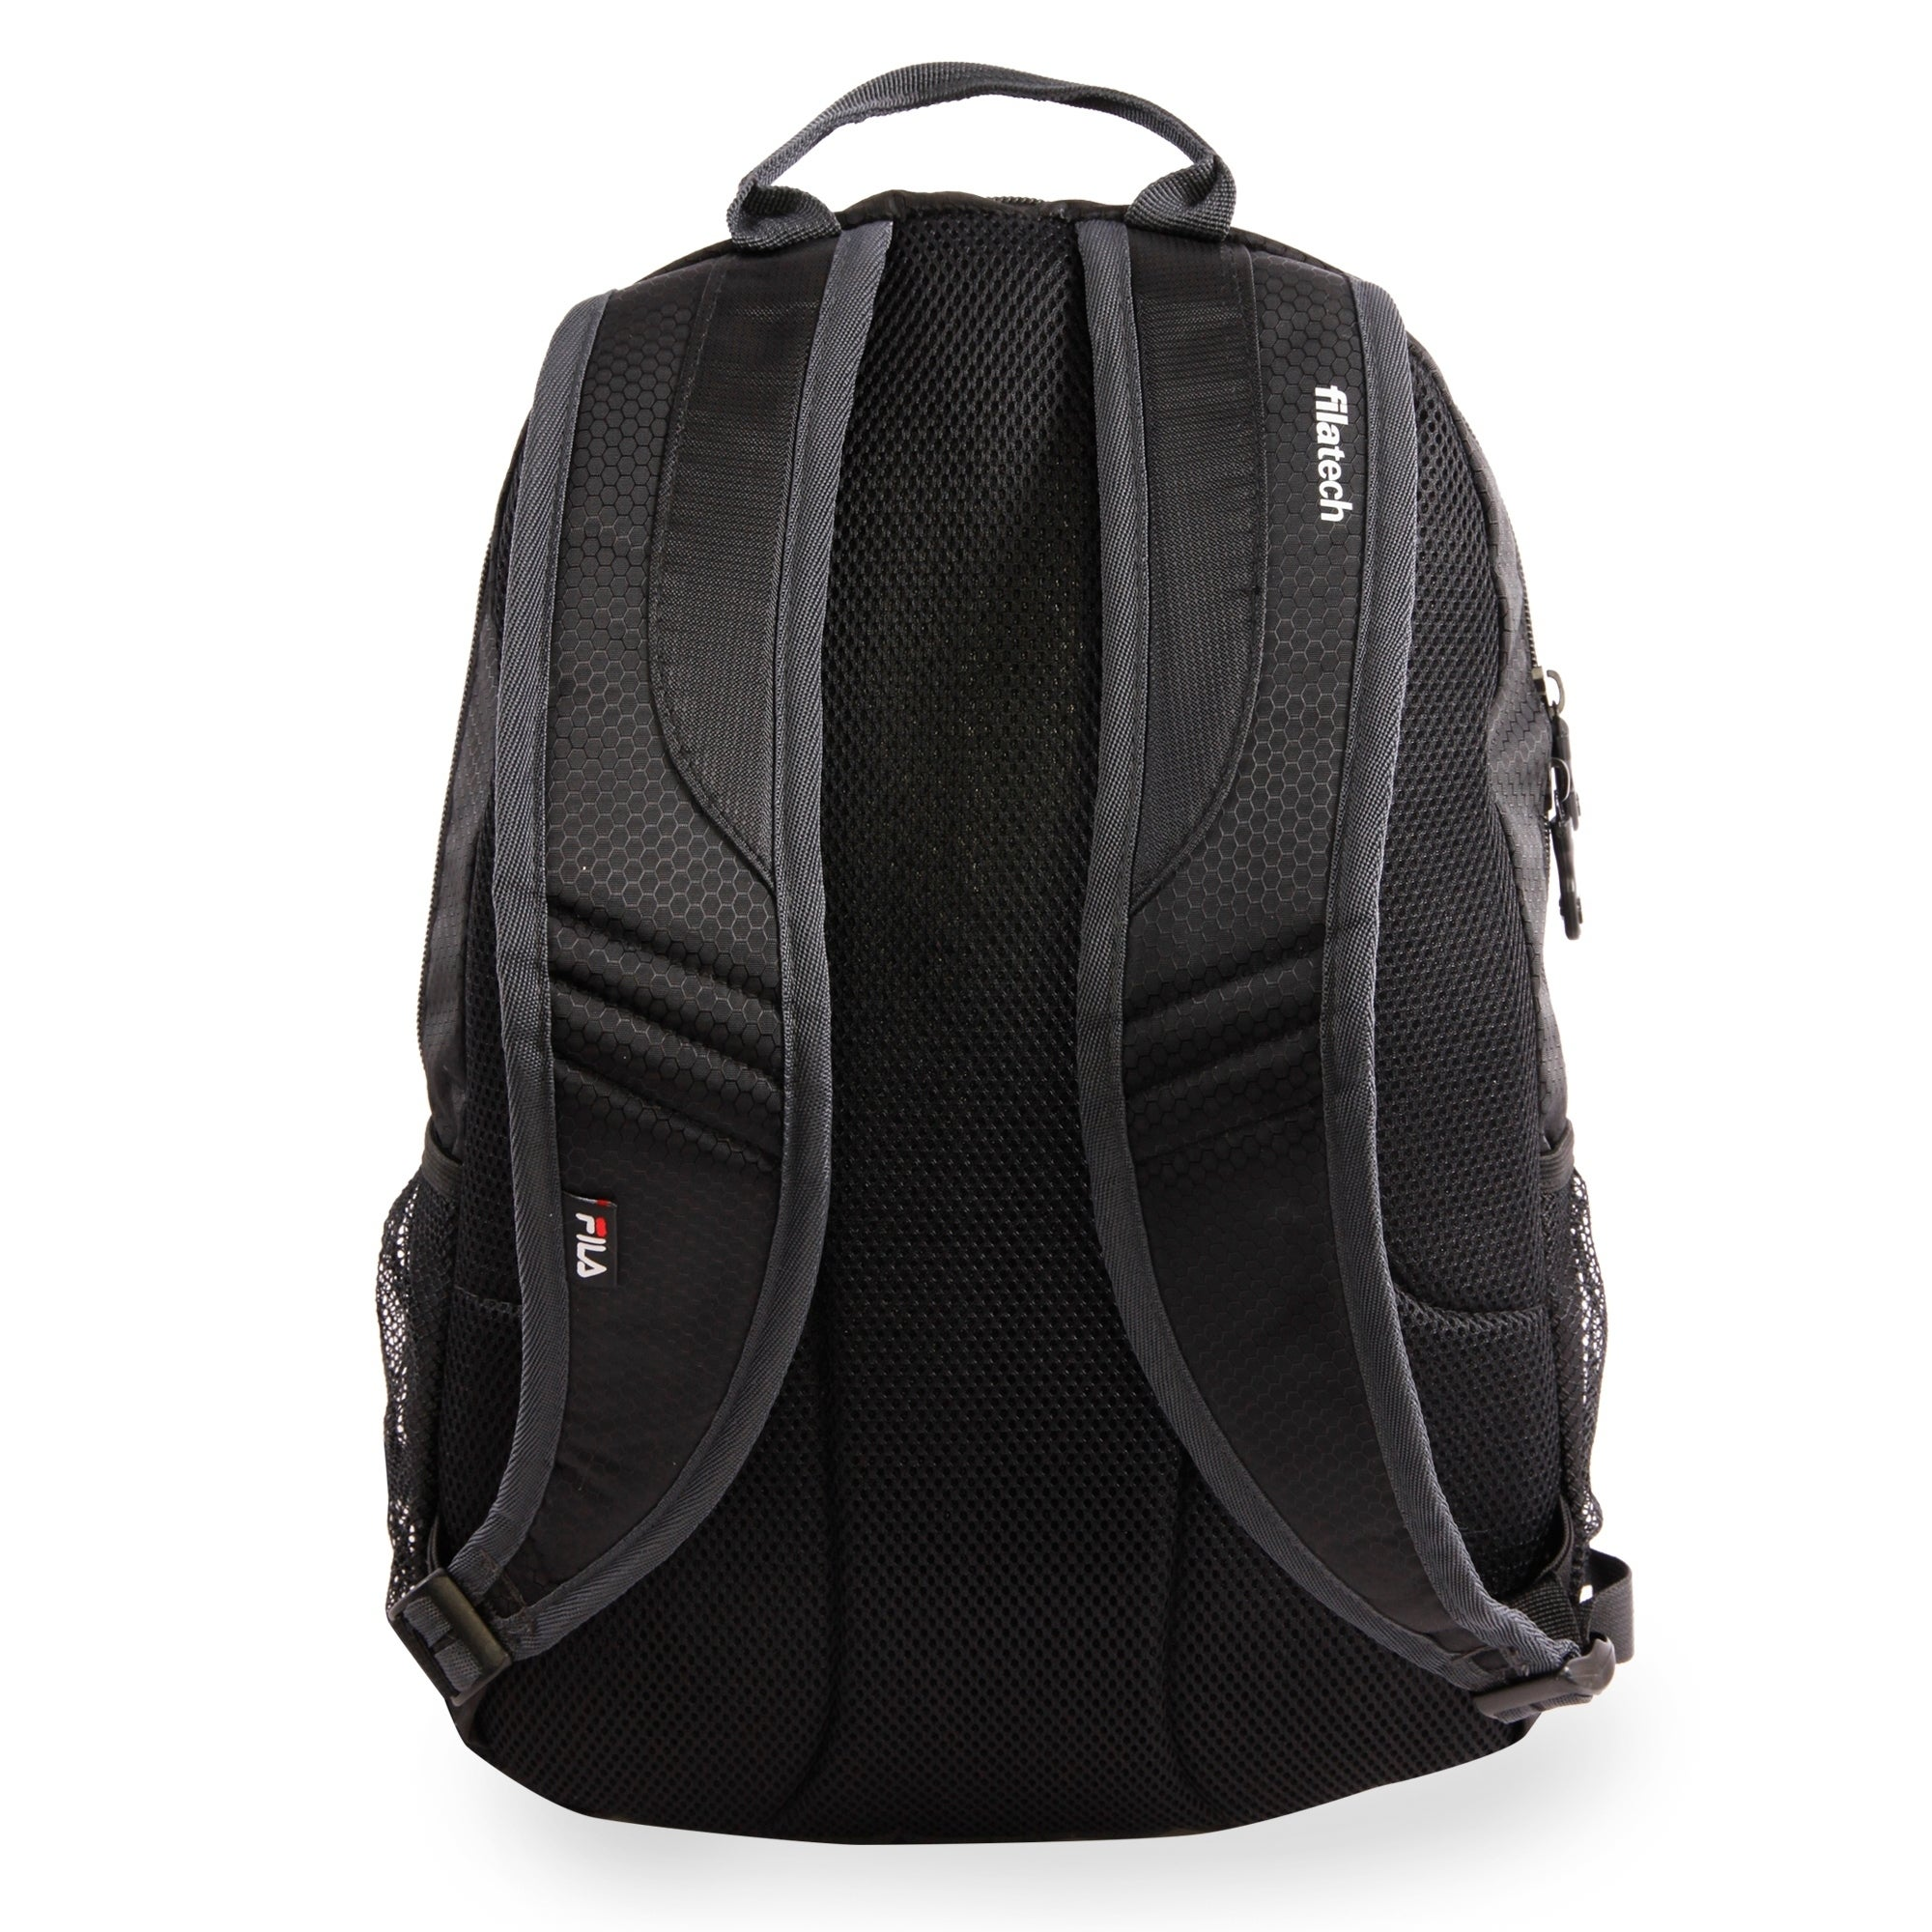 9b4de6248dd1 Shop Fila KTana 15-in Laptop Backpack with Tablet Compartment - Free  Shipping On Orders Over  45 - Overstock - 21135293